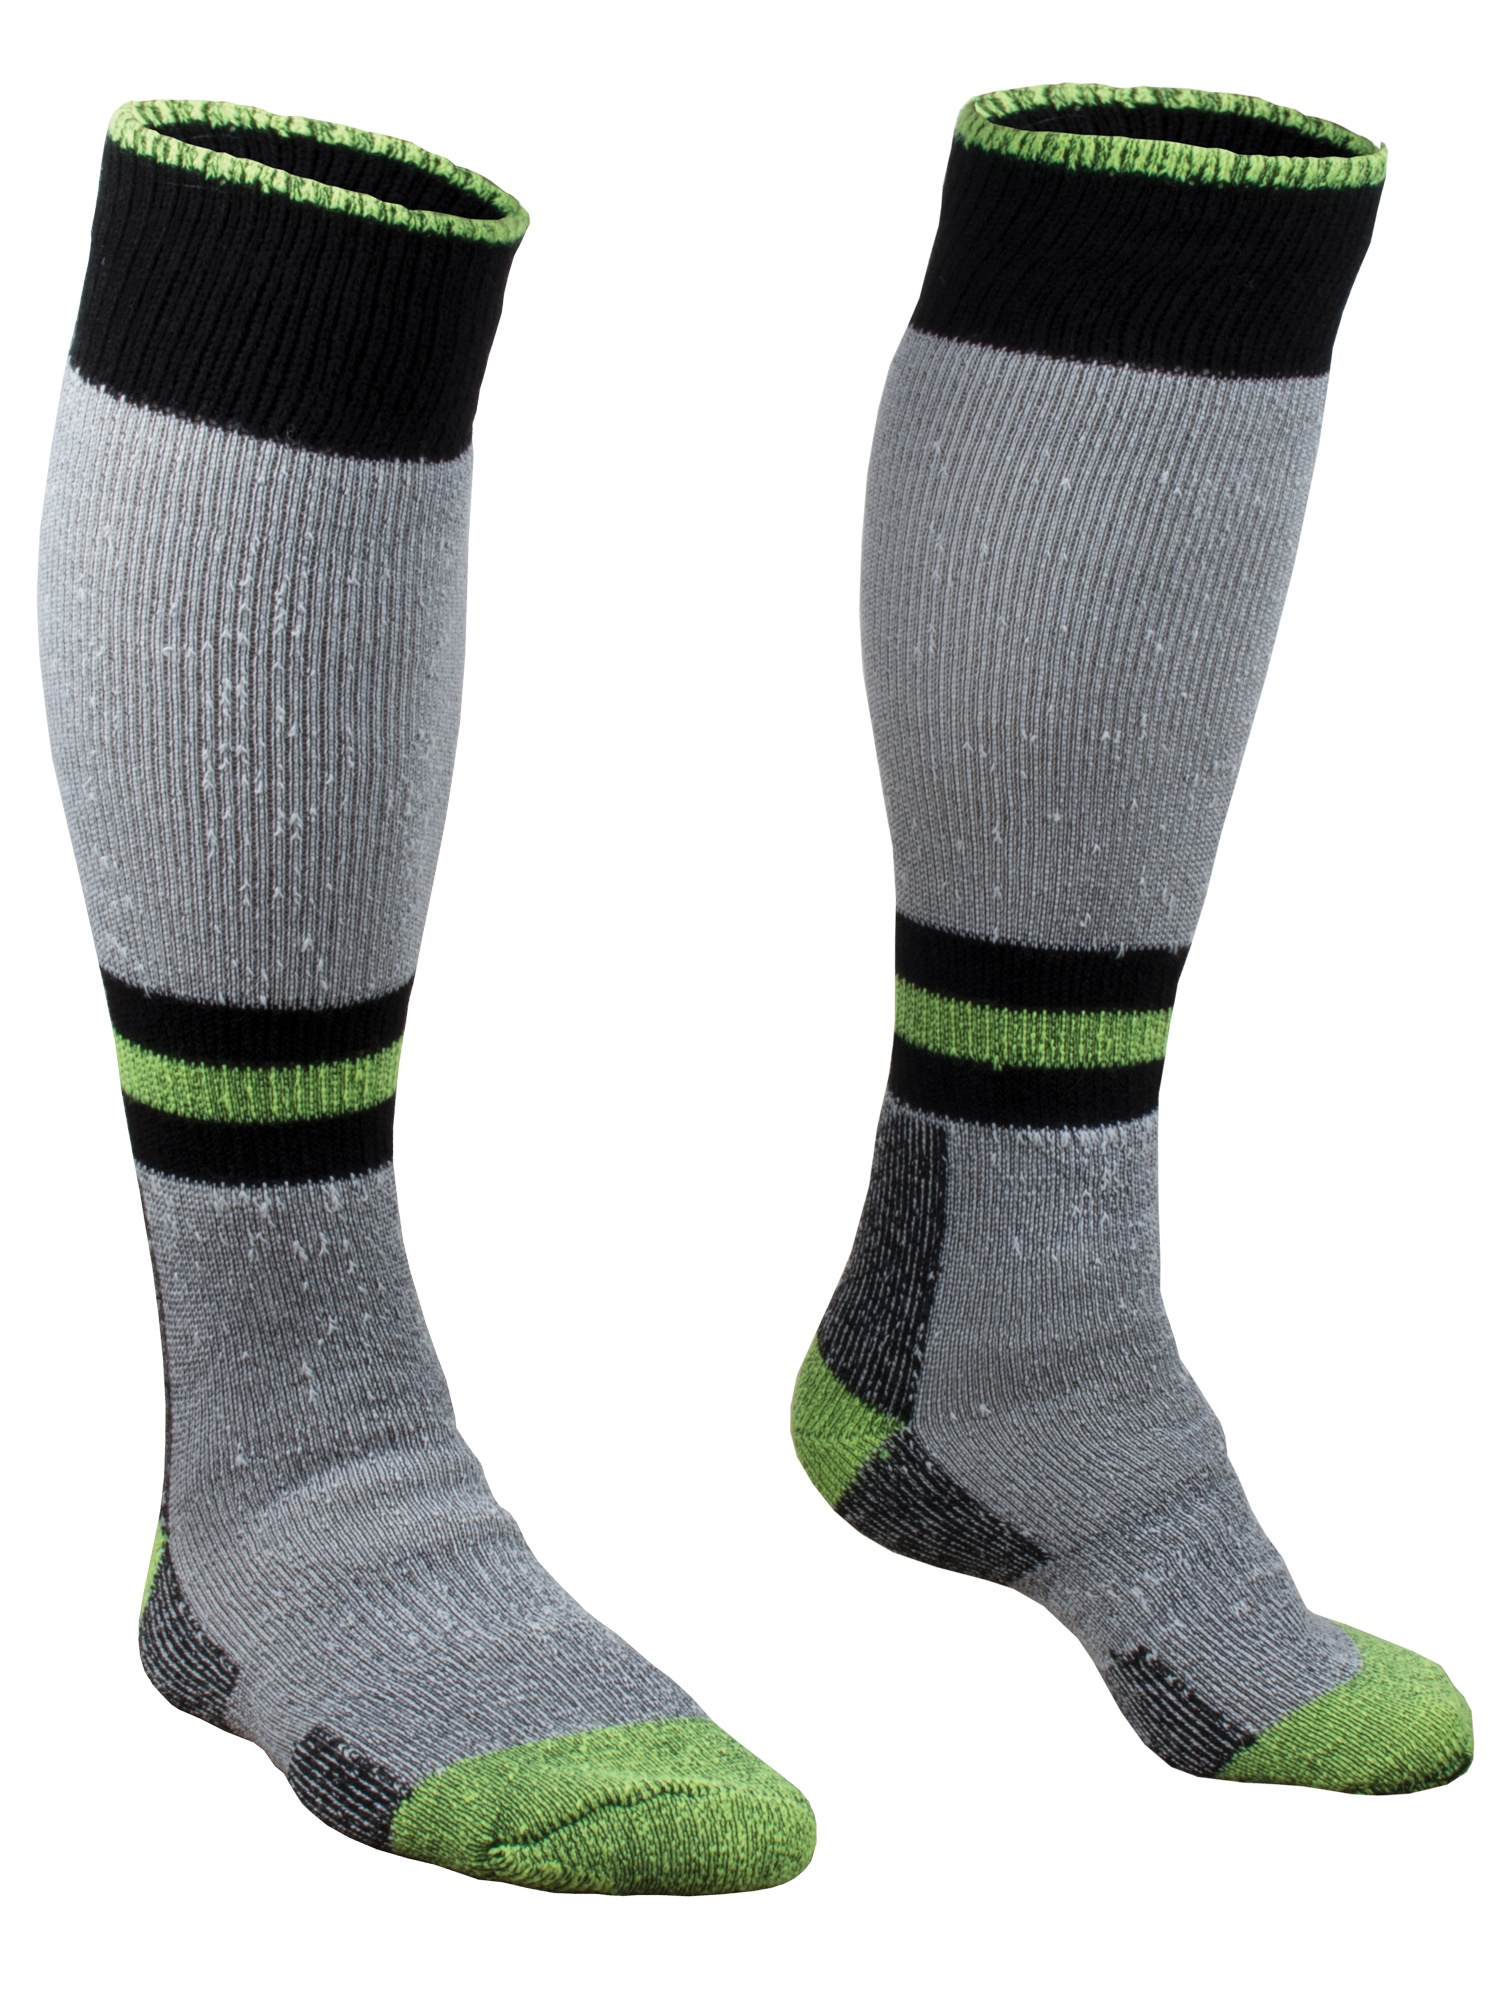 RefrigiWear Men's Cold Weather Moisture Wicking 15-Inch Knee Length Super Sock